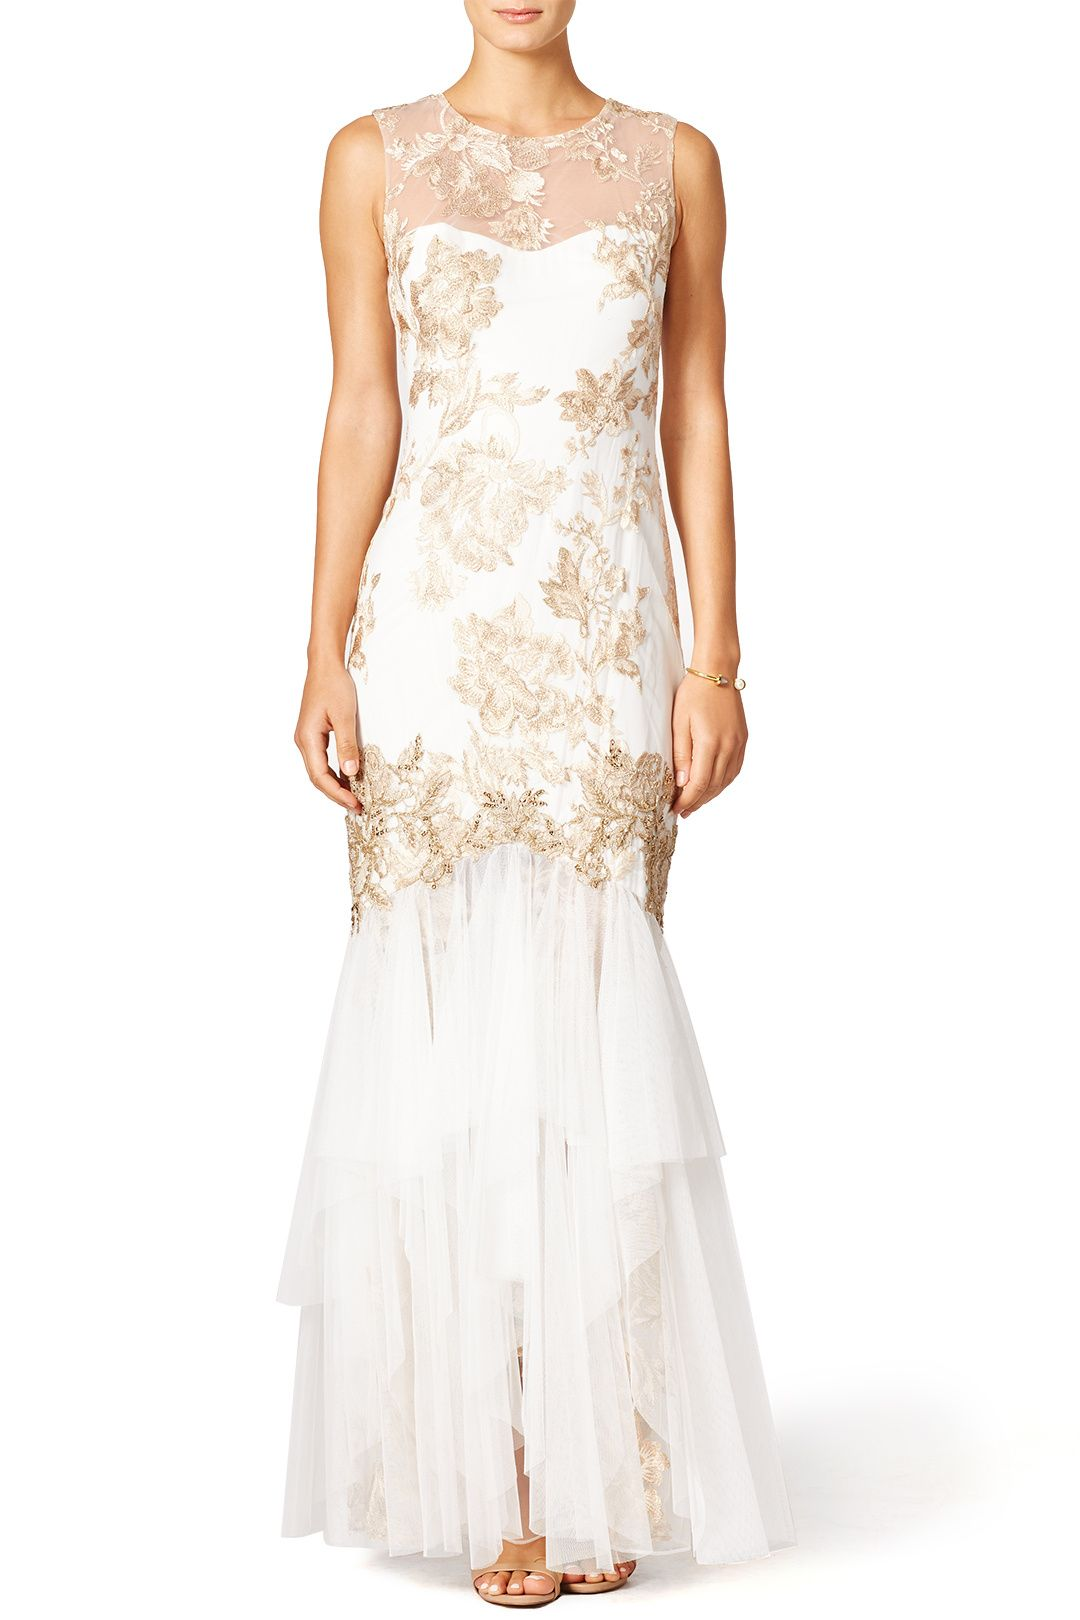 Rent Clea Gown by Marchesa Notte for $130 only at Rent the Runway ...